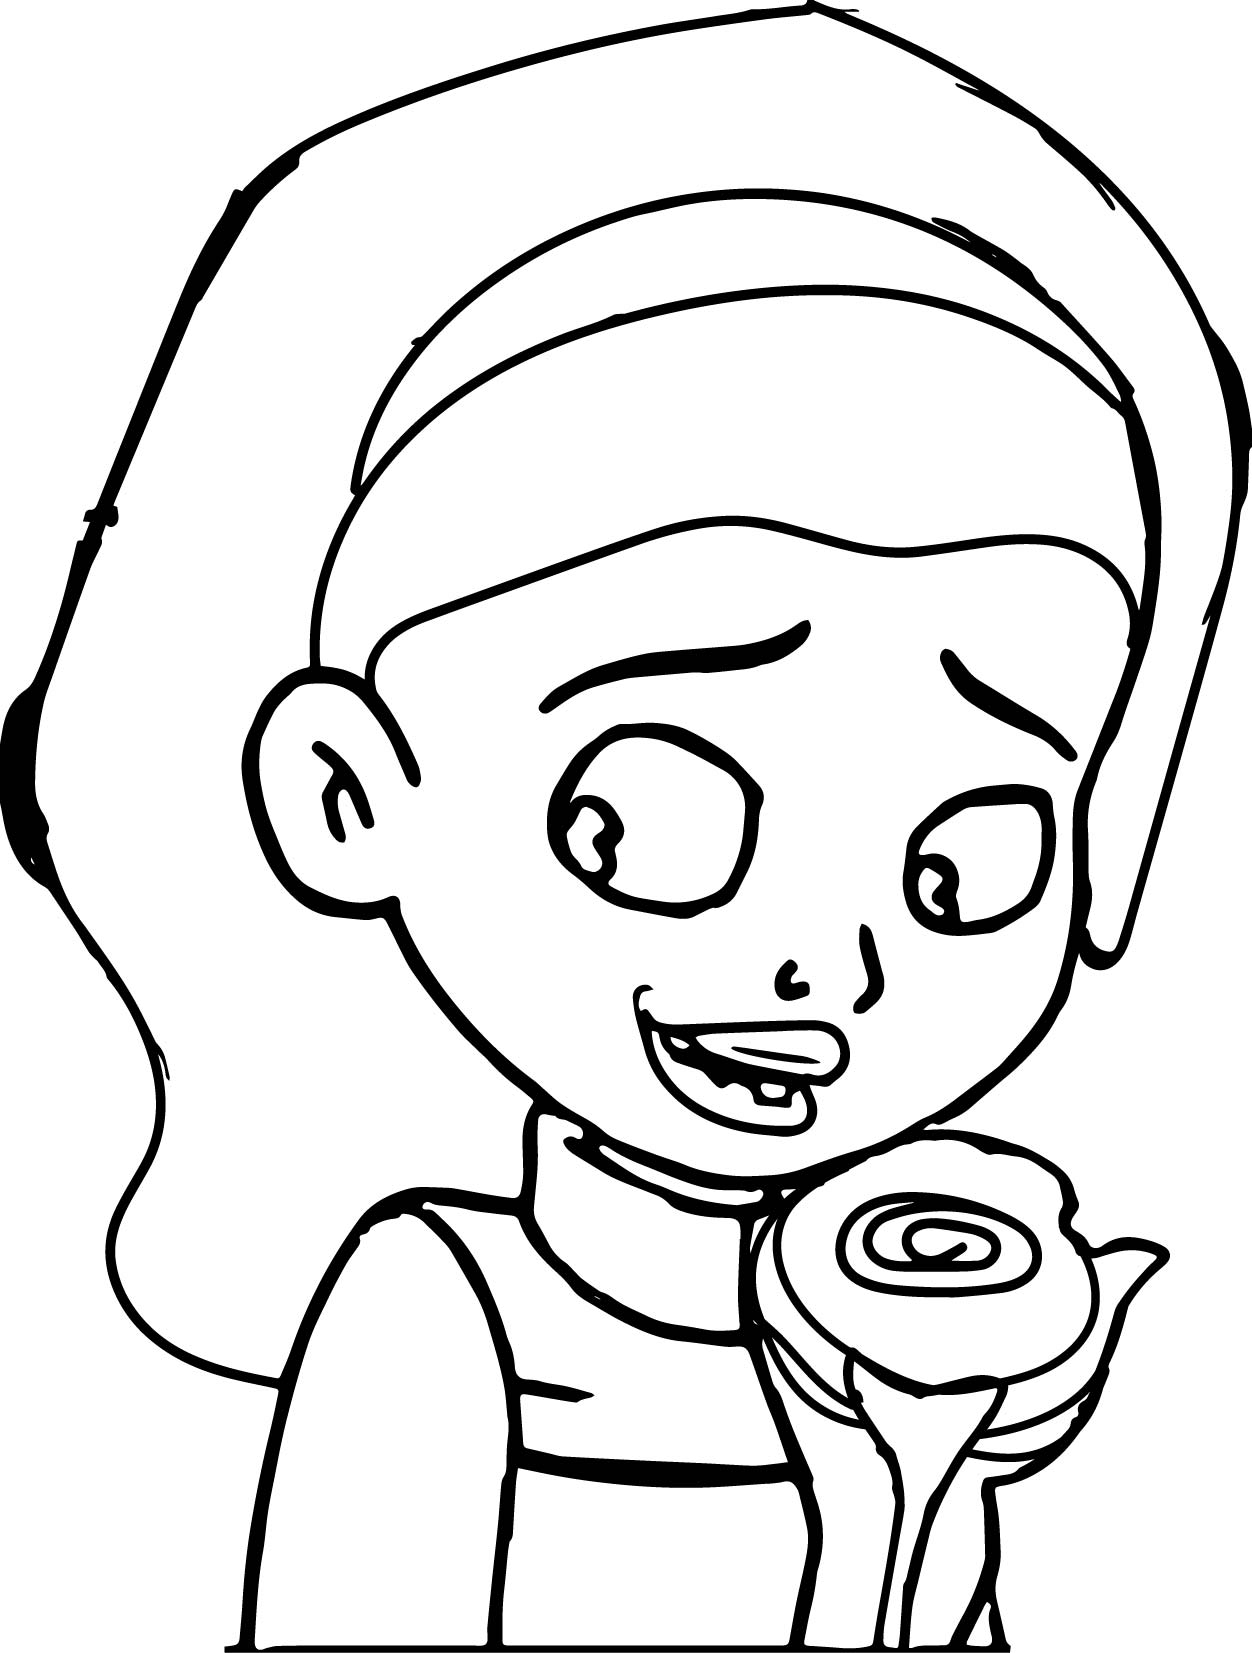 rose winter american dragon coloring page wecoloringpage